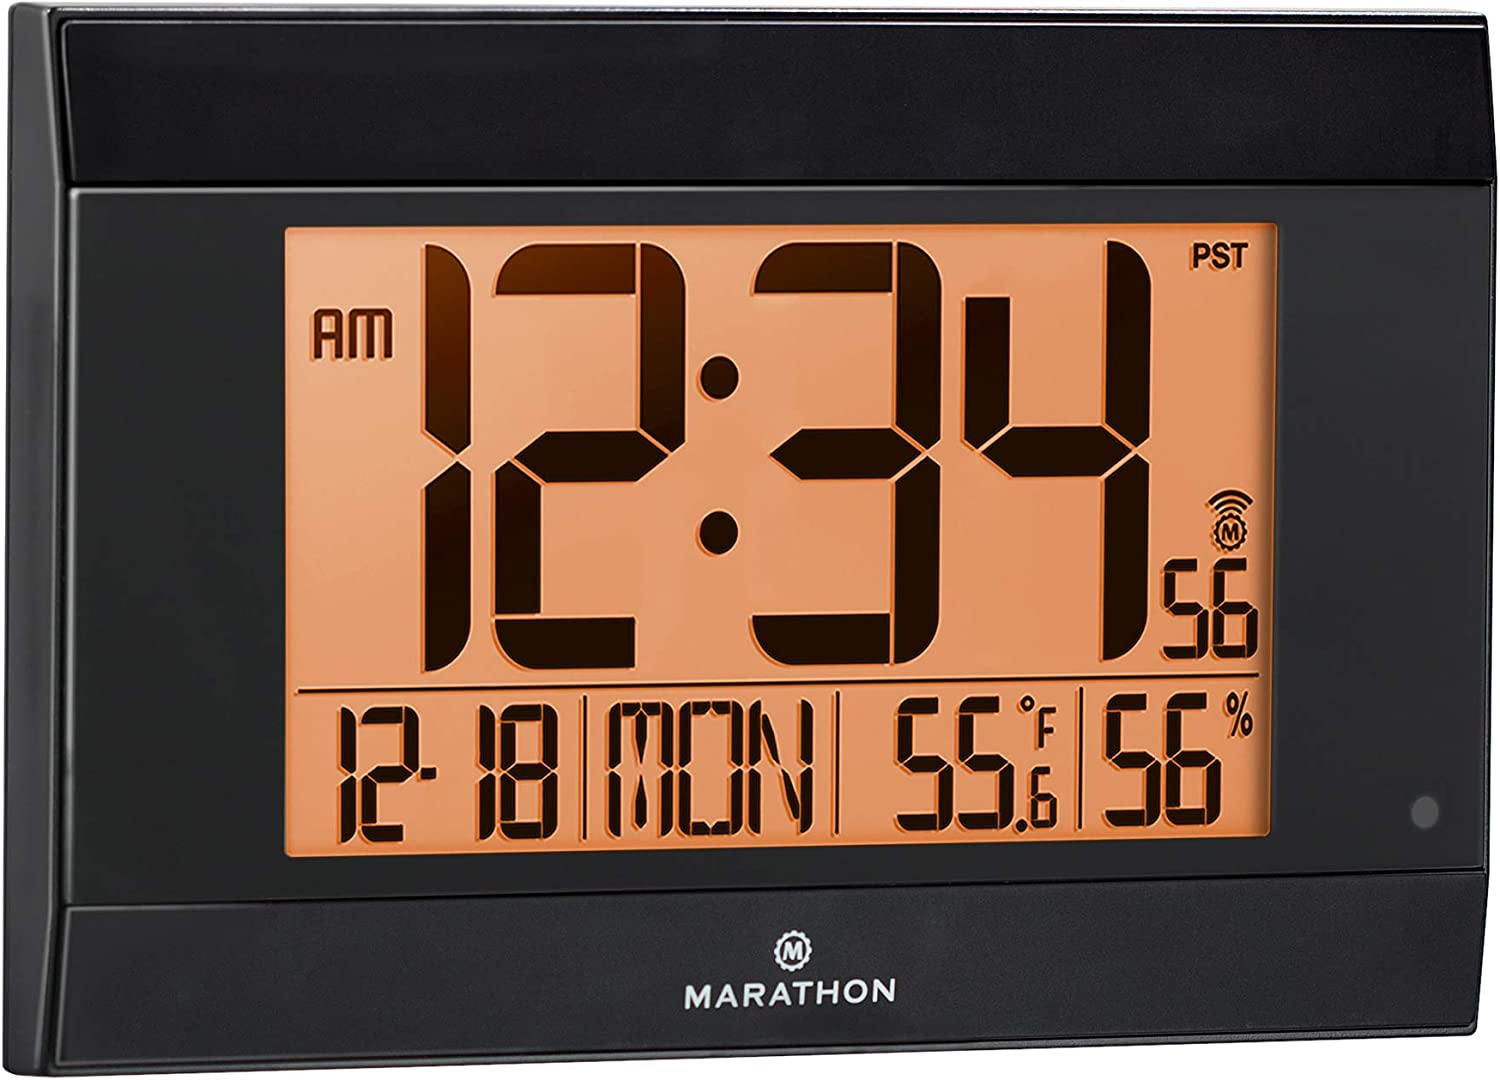 Marathon Large Atomic Wall Clock with Auto Backlight, Calendar, Temperature, and Humidity – Batteries Included – CL030052